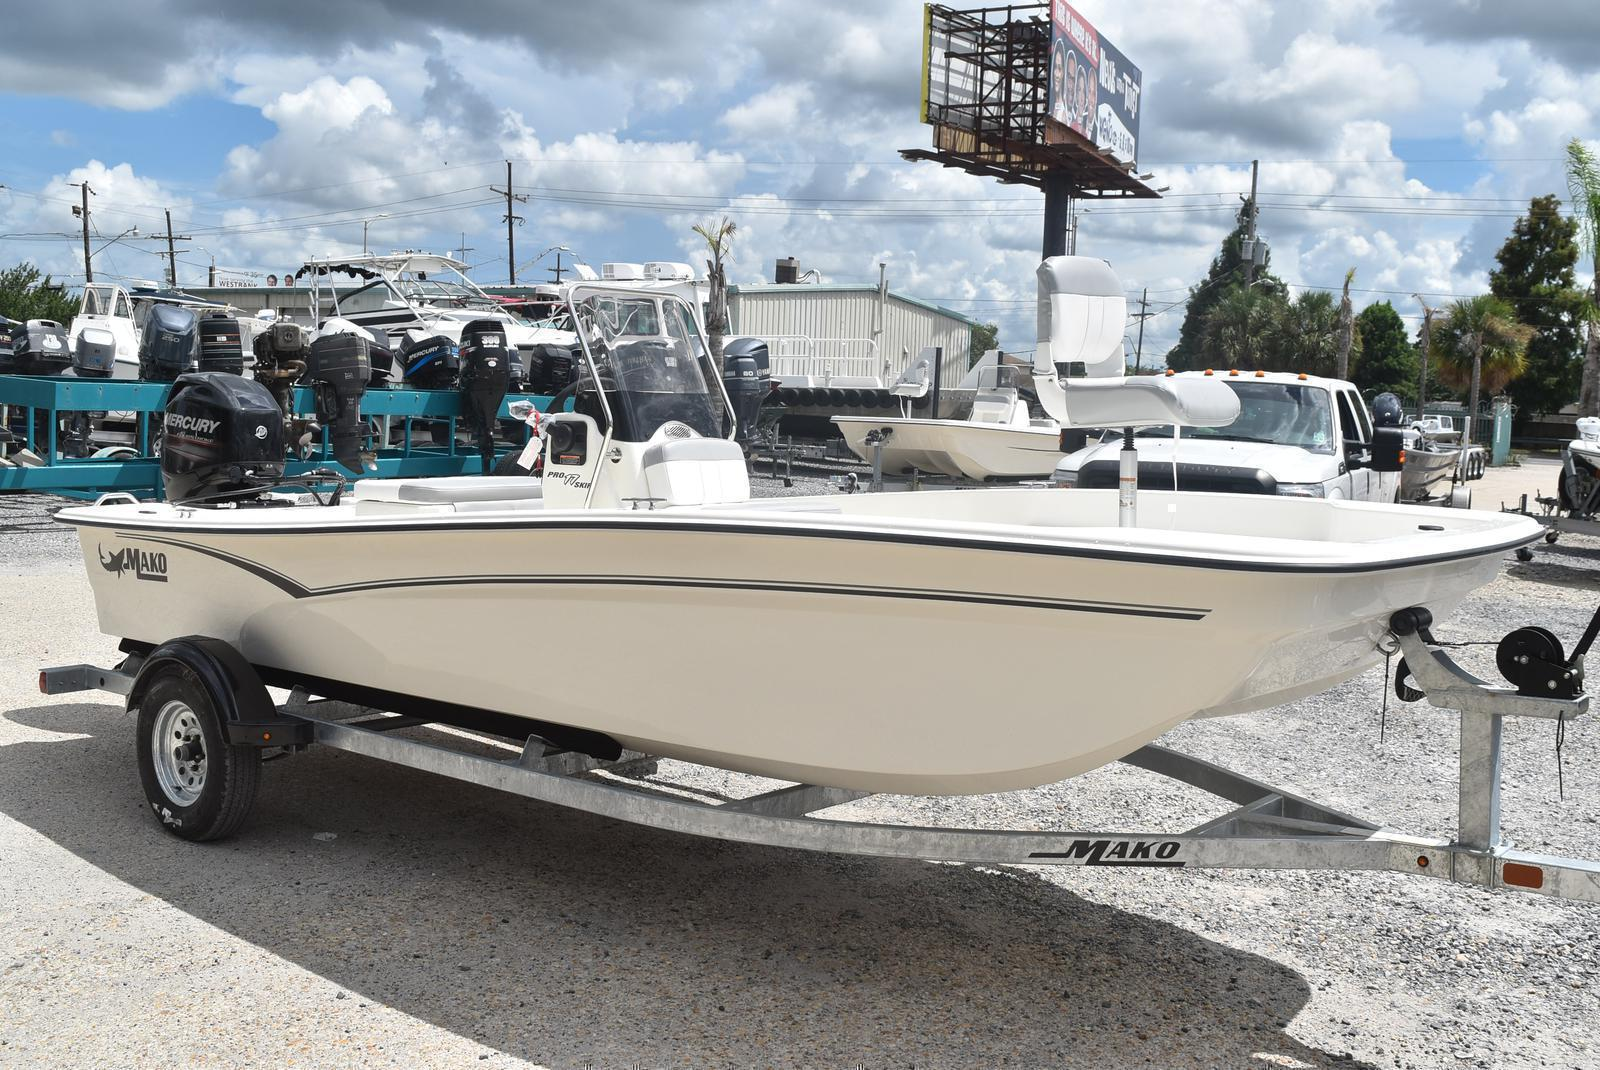 2020 Mako boat for sale, model of the boat is Pro Skiff 17, 75 ELPT & Image # 684 of 702